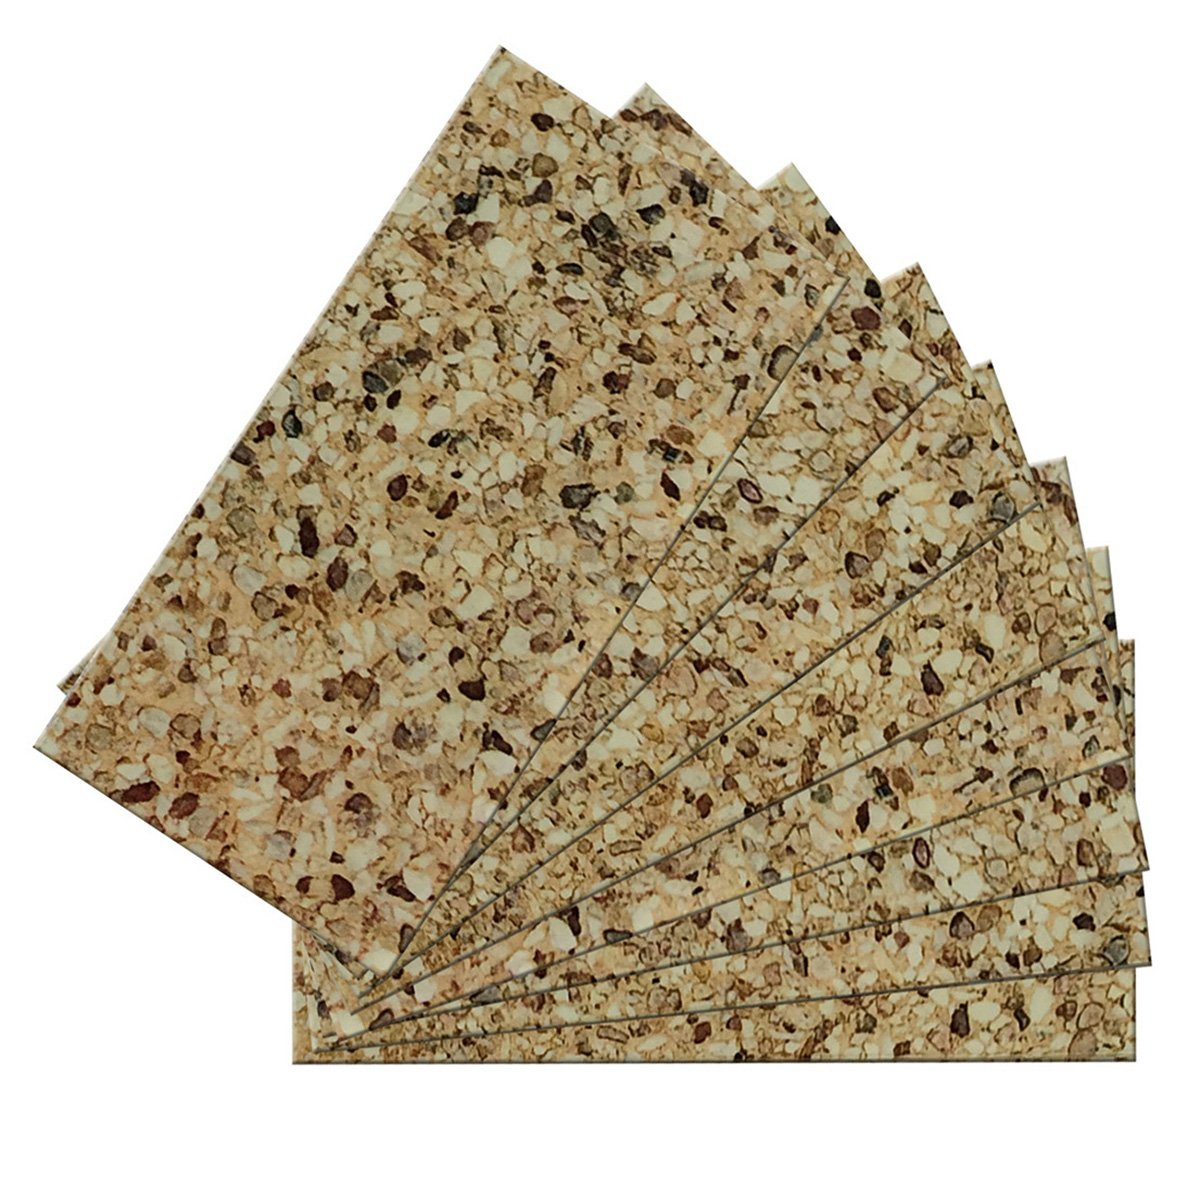 SkinnyTile 4407 Peel and Stick Washed Gravel Shades Glass Wall Tile (48 Pack), 6'' x 3'', Brown/Tan